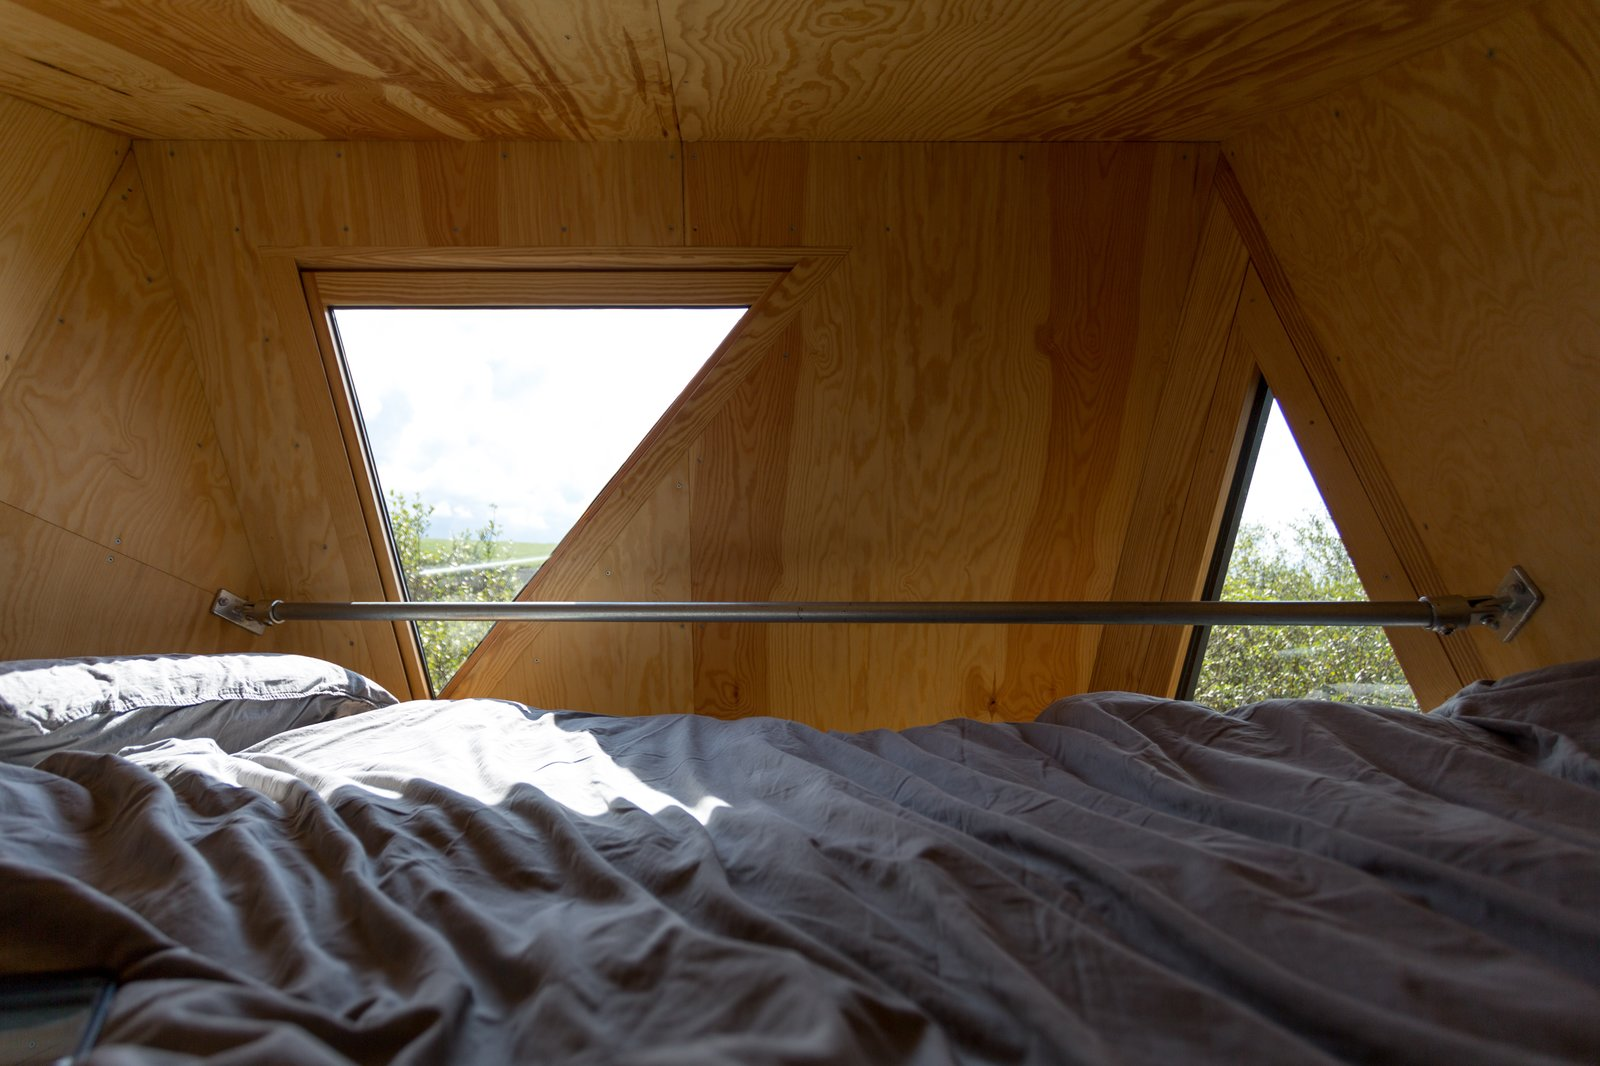 Small triangular windows allow for views of the Cornish countryside.